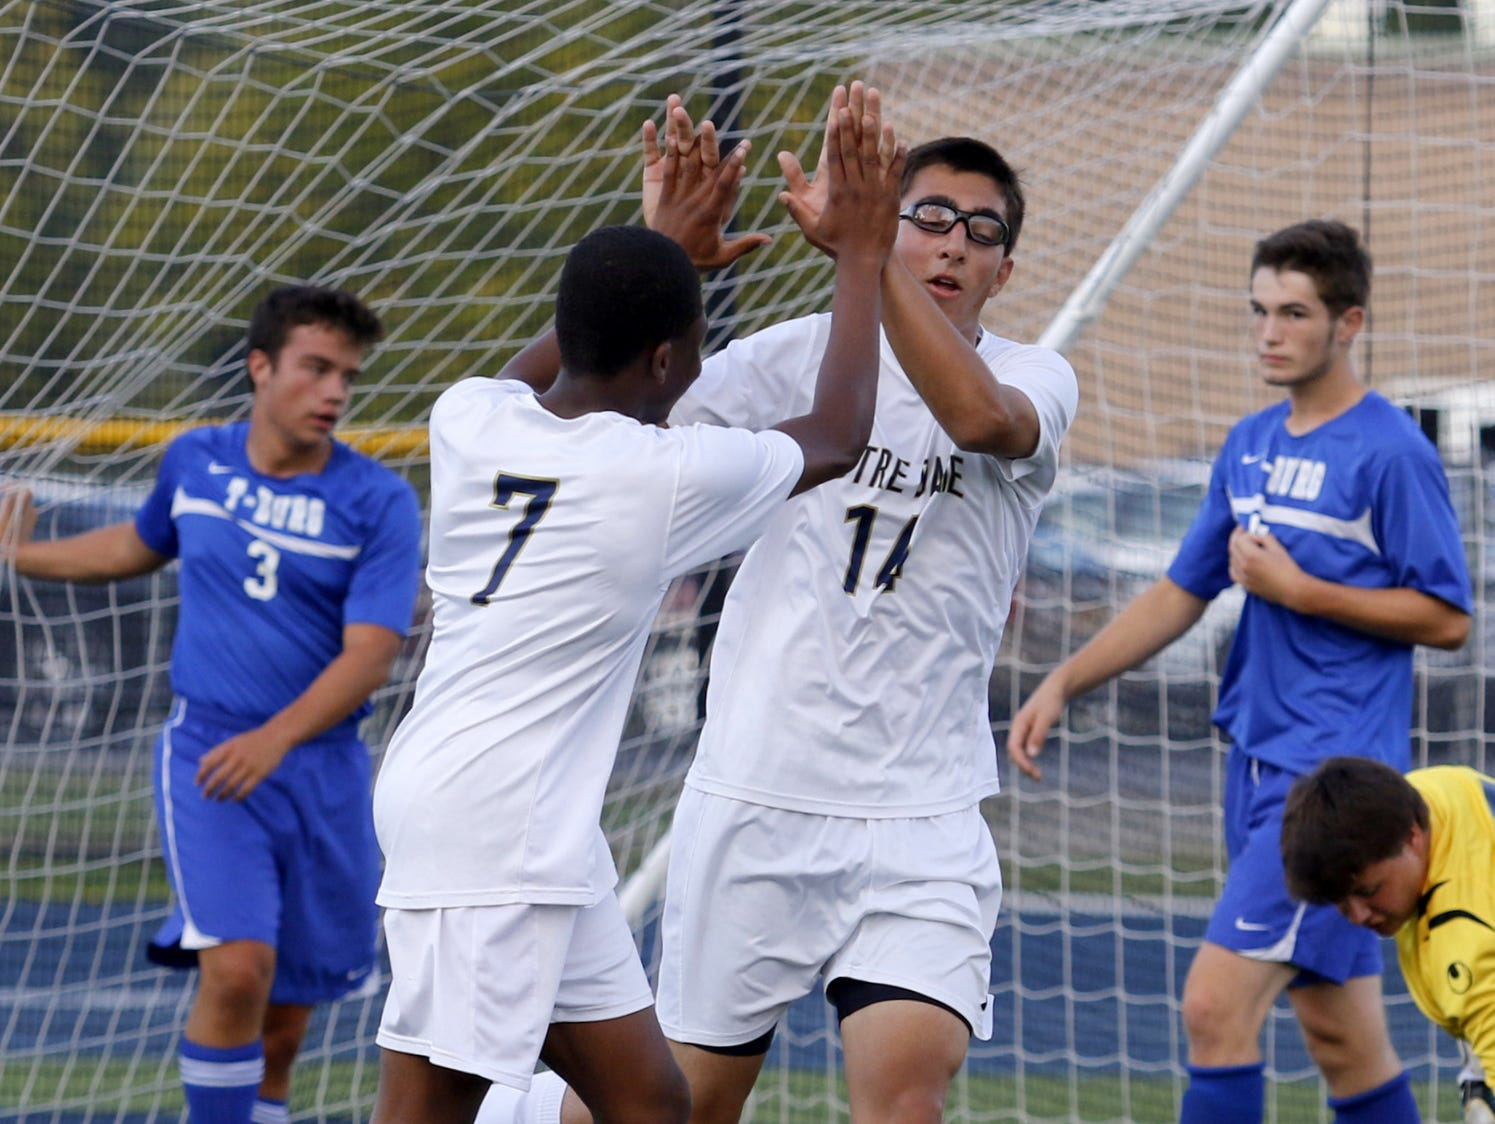 Notre Dame's Rocco Coulibaly (7) and Aidan Sharma celebrate a goal against Trumansburg earlier this season.